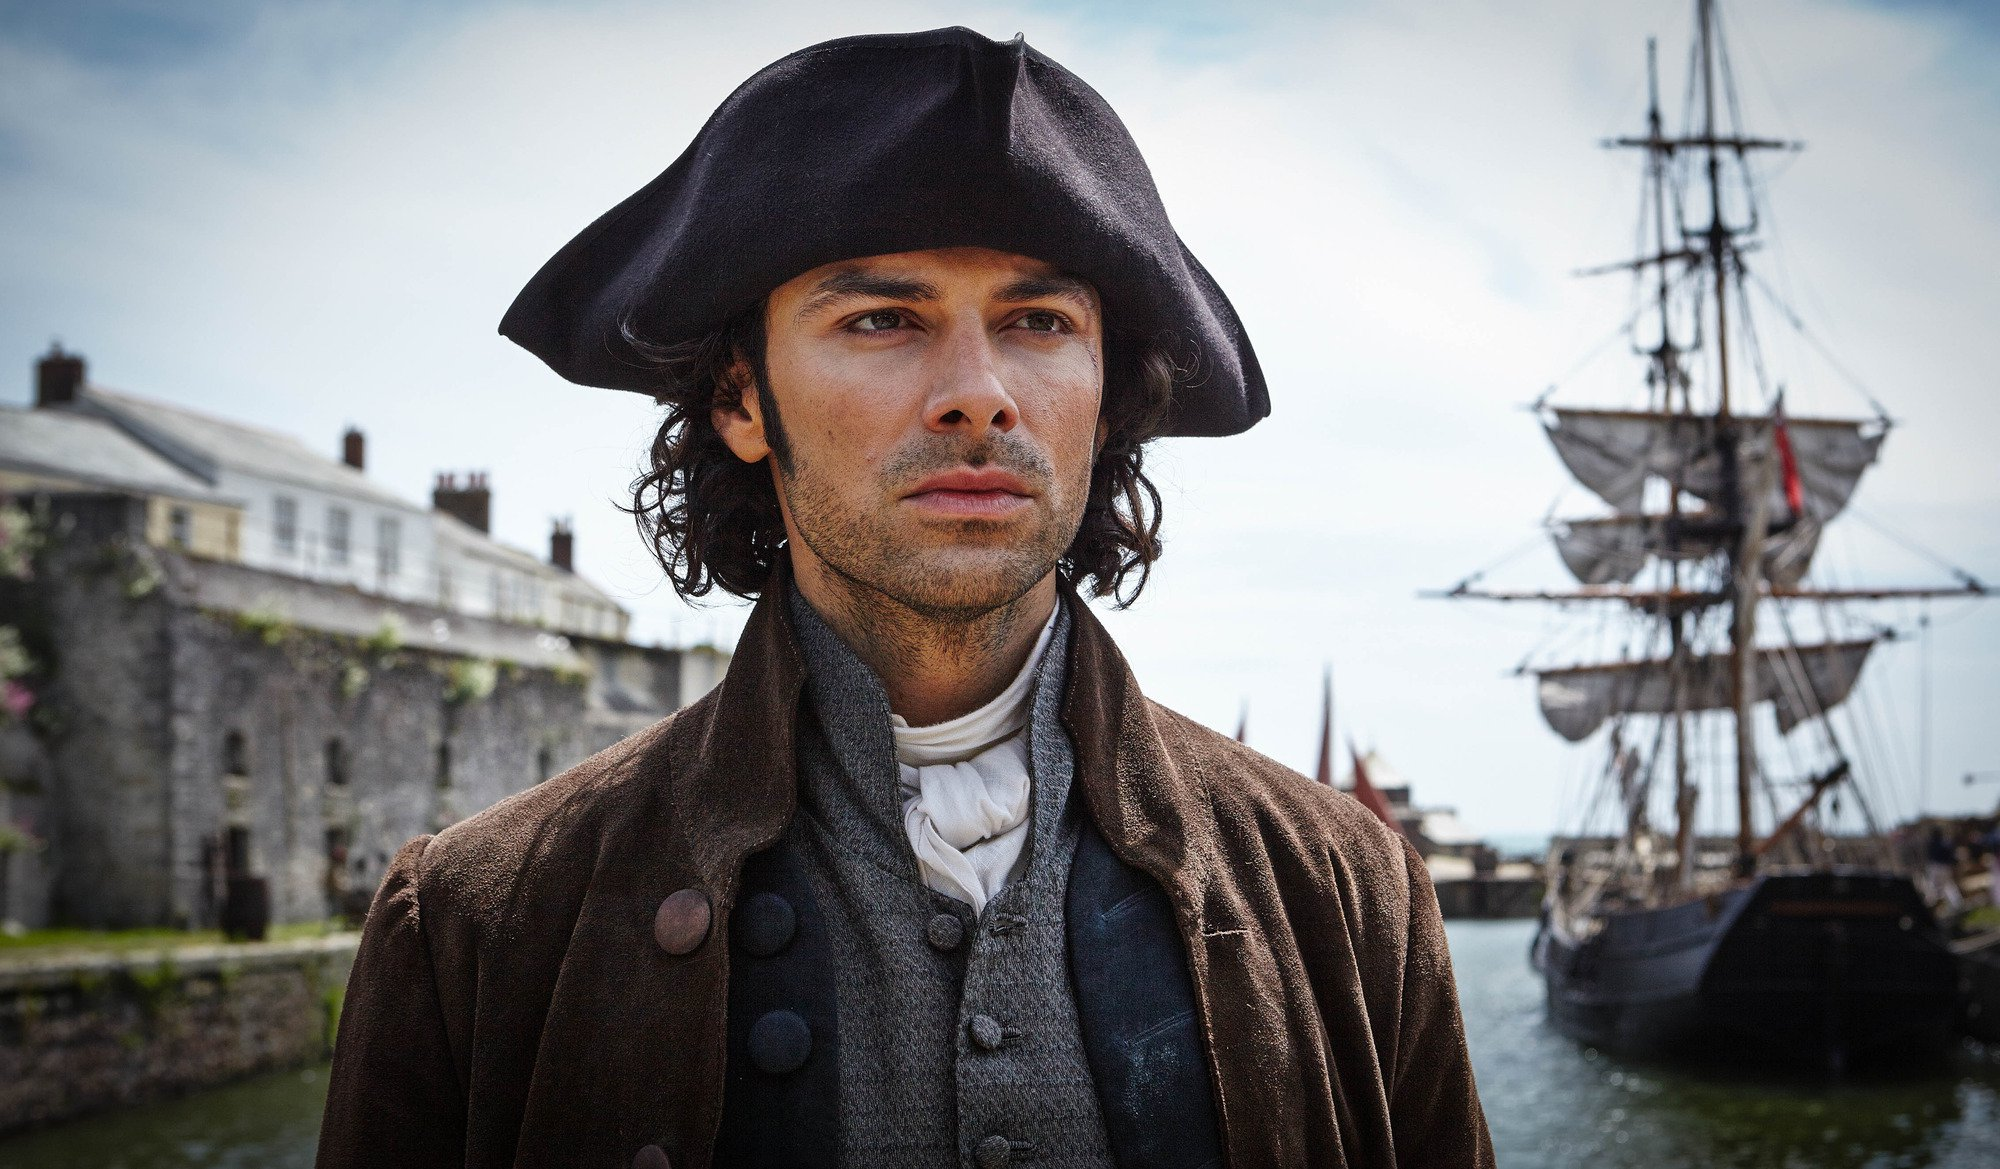 Poldark finale clashes with BBC's athletics coverage leaving viewers furious